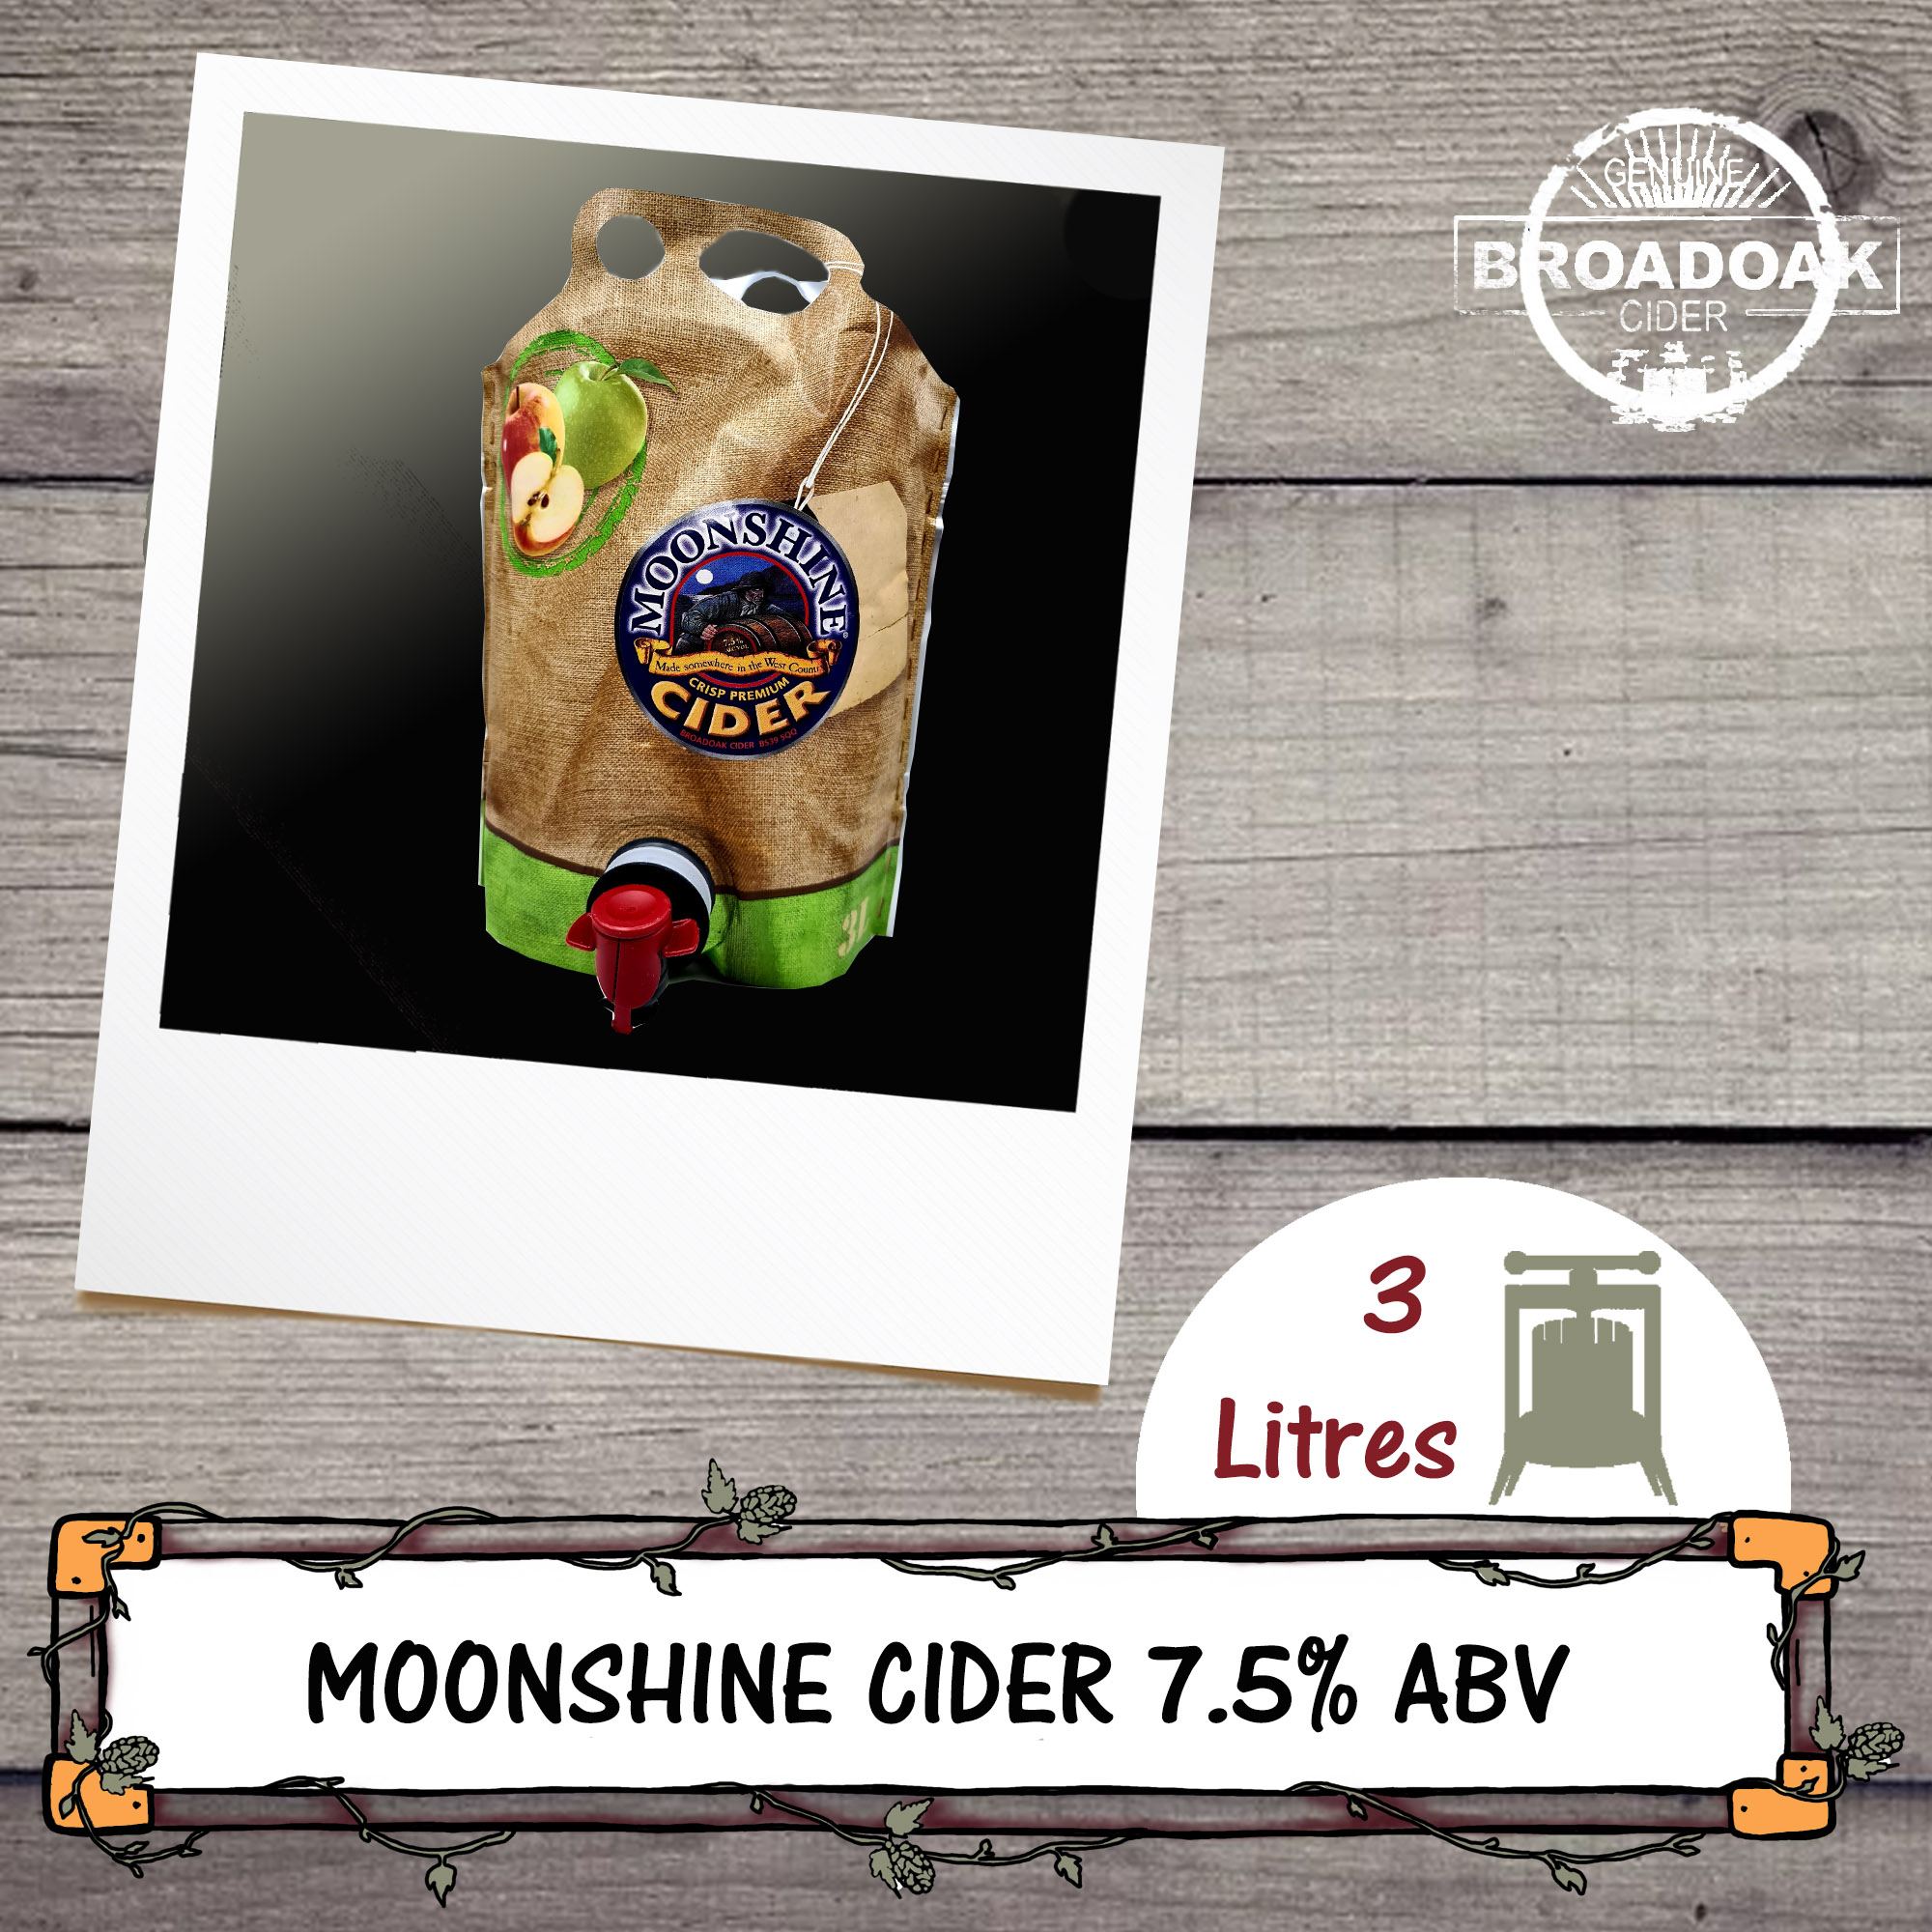 Moonshine Broadoak Cider